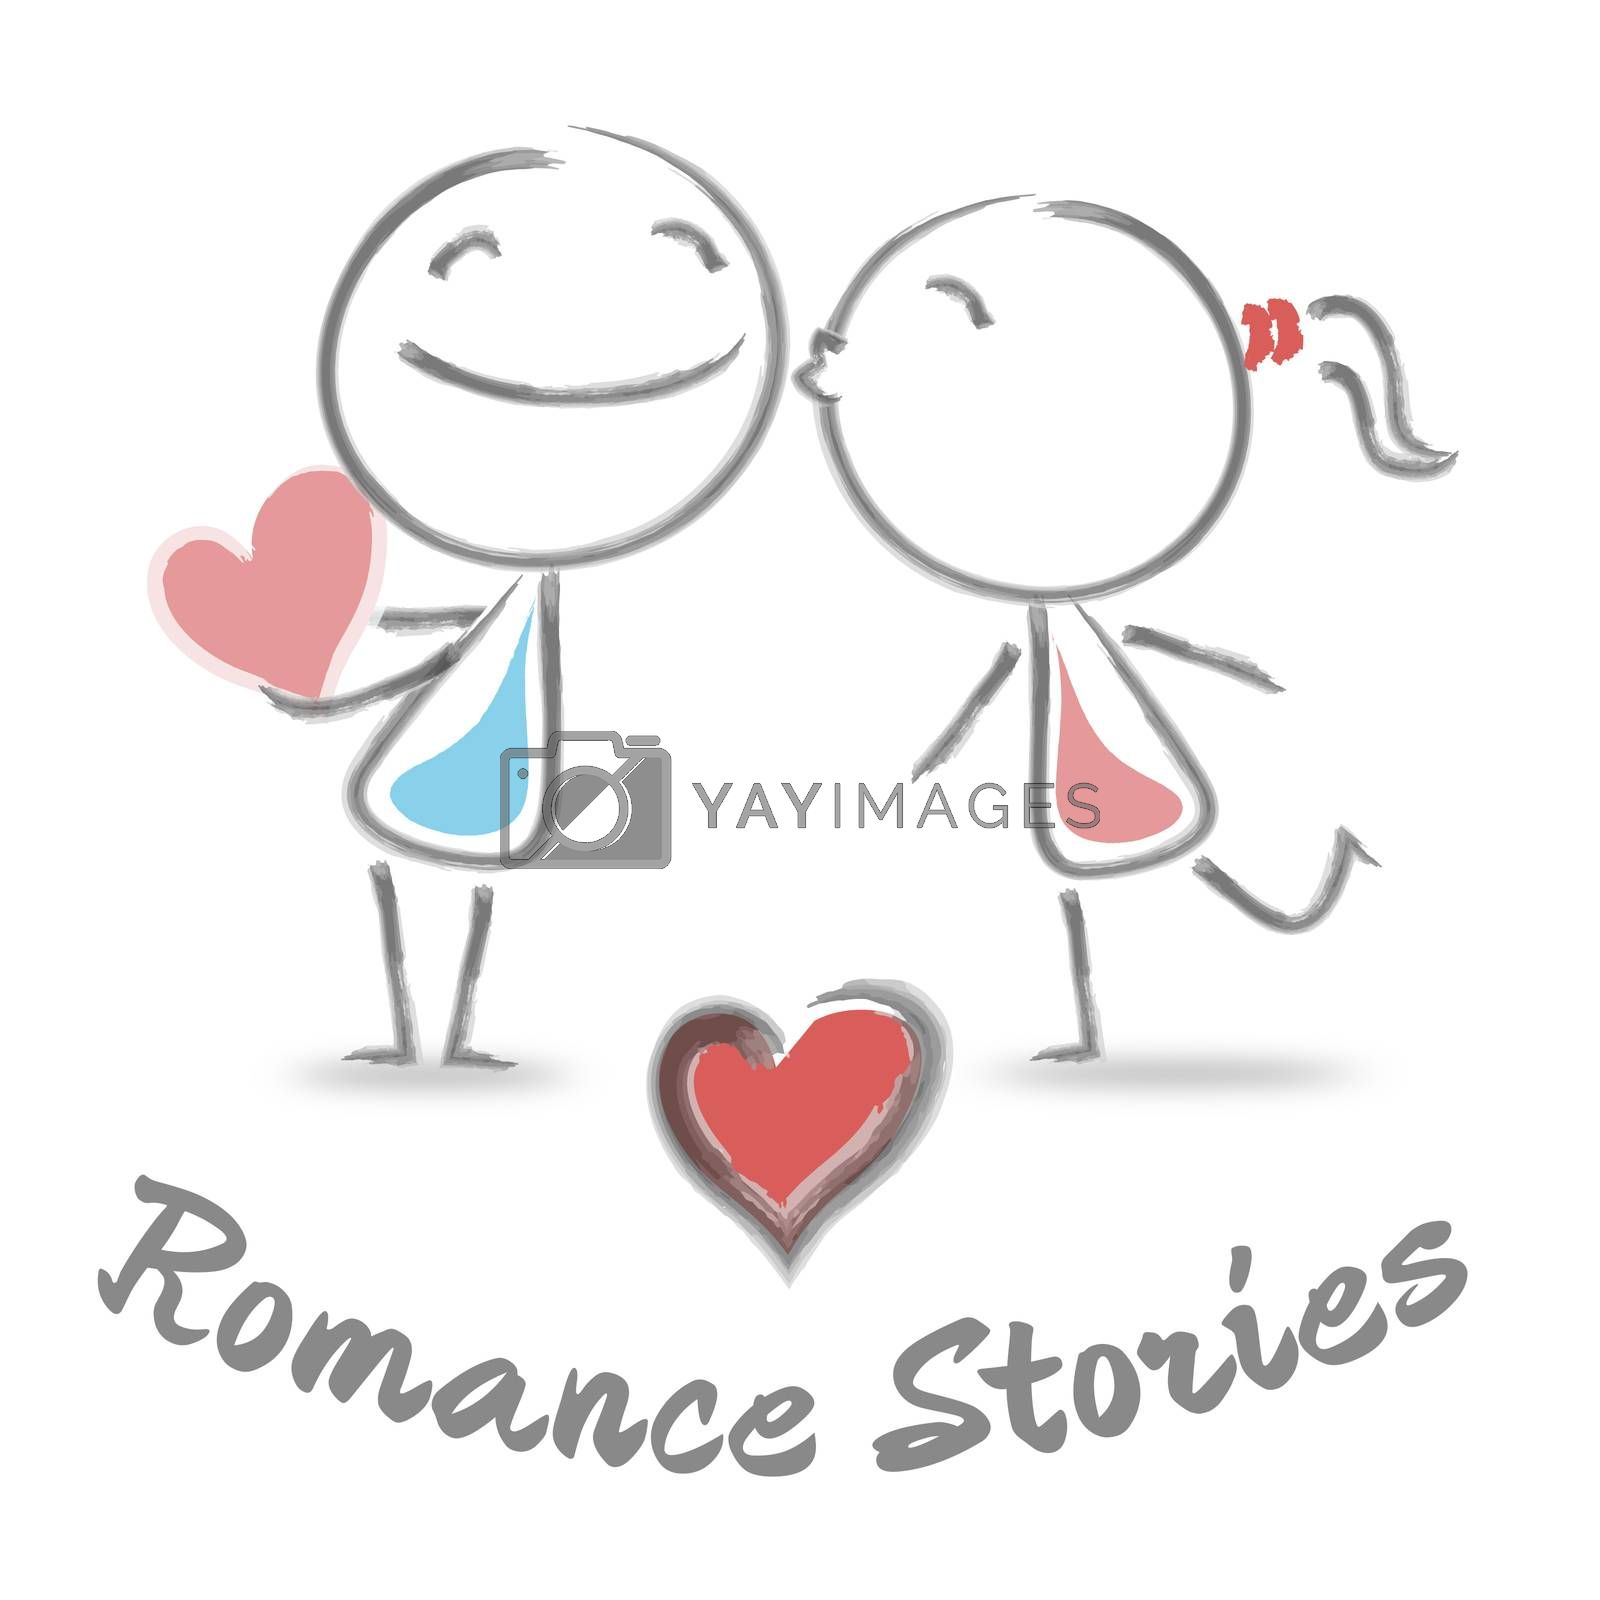 Romance Stories Meaning Find Love And Romances